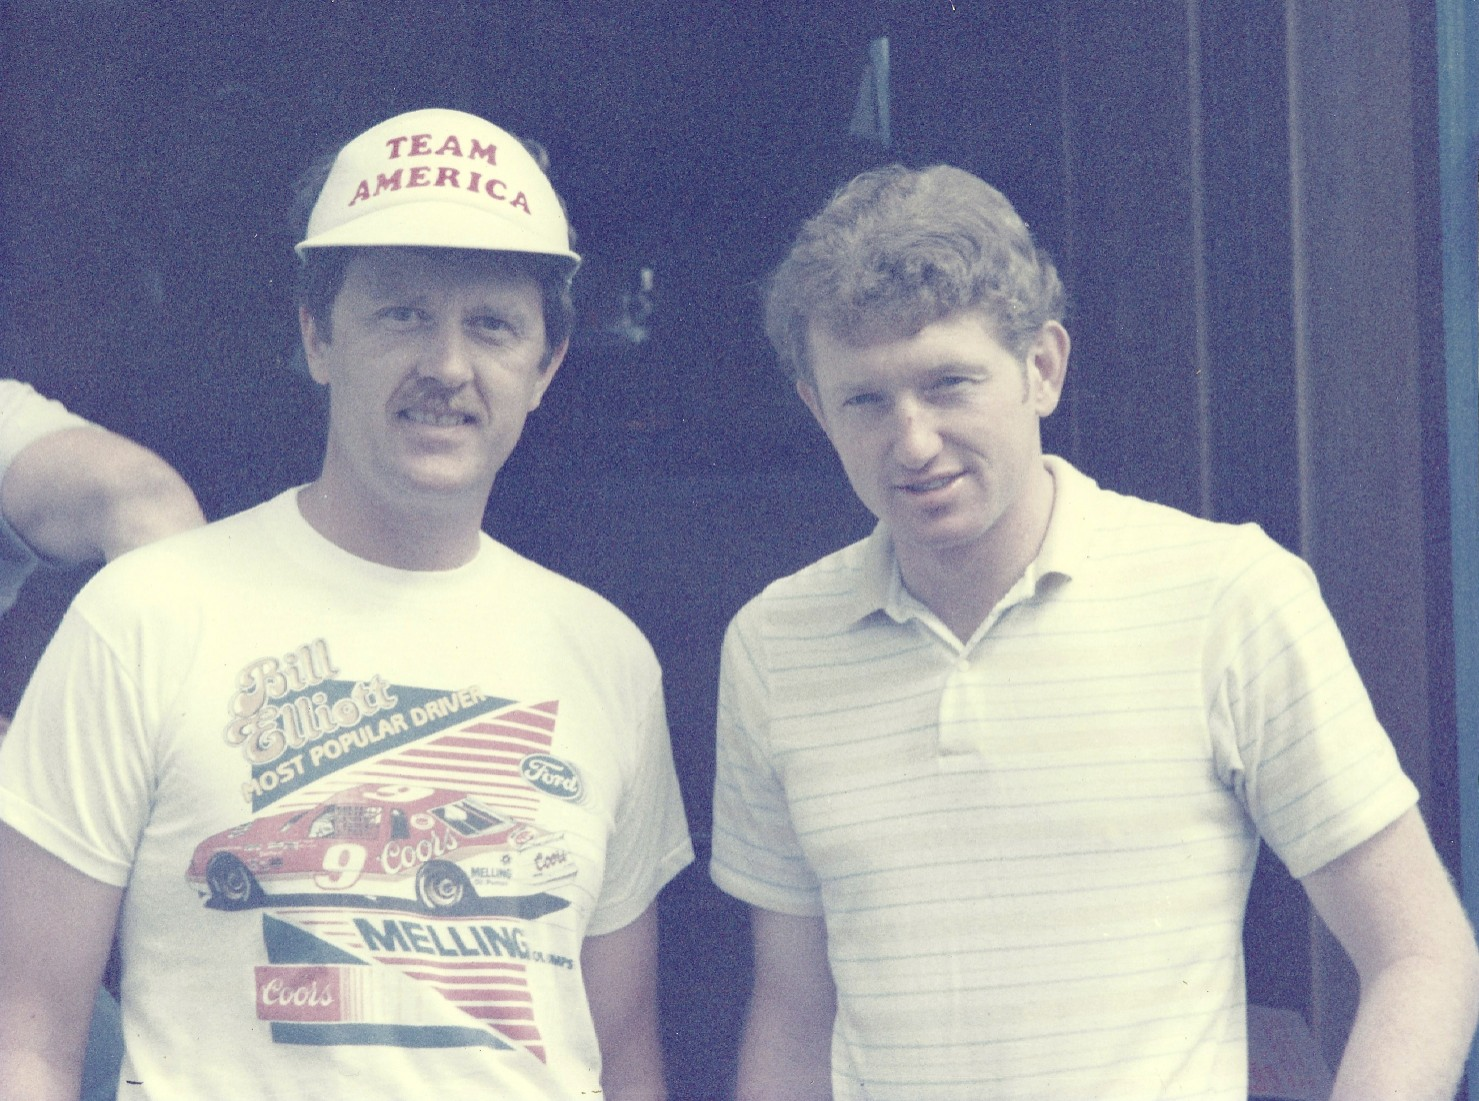 Luckily I was wearing a Bill Elliott t-shirt the day I first met him at the Evergreen Speedway (WA) in 1985.